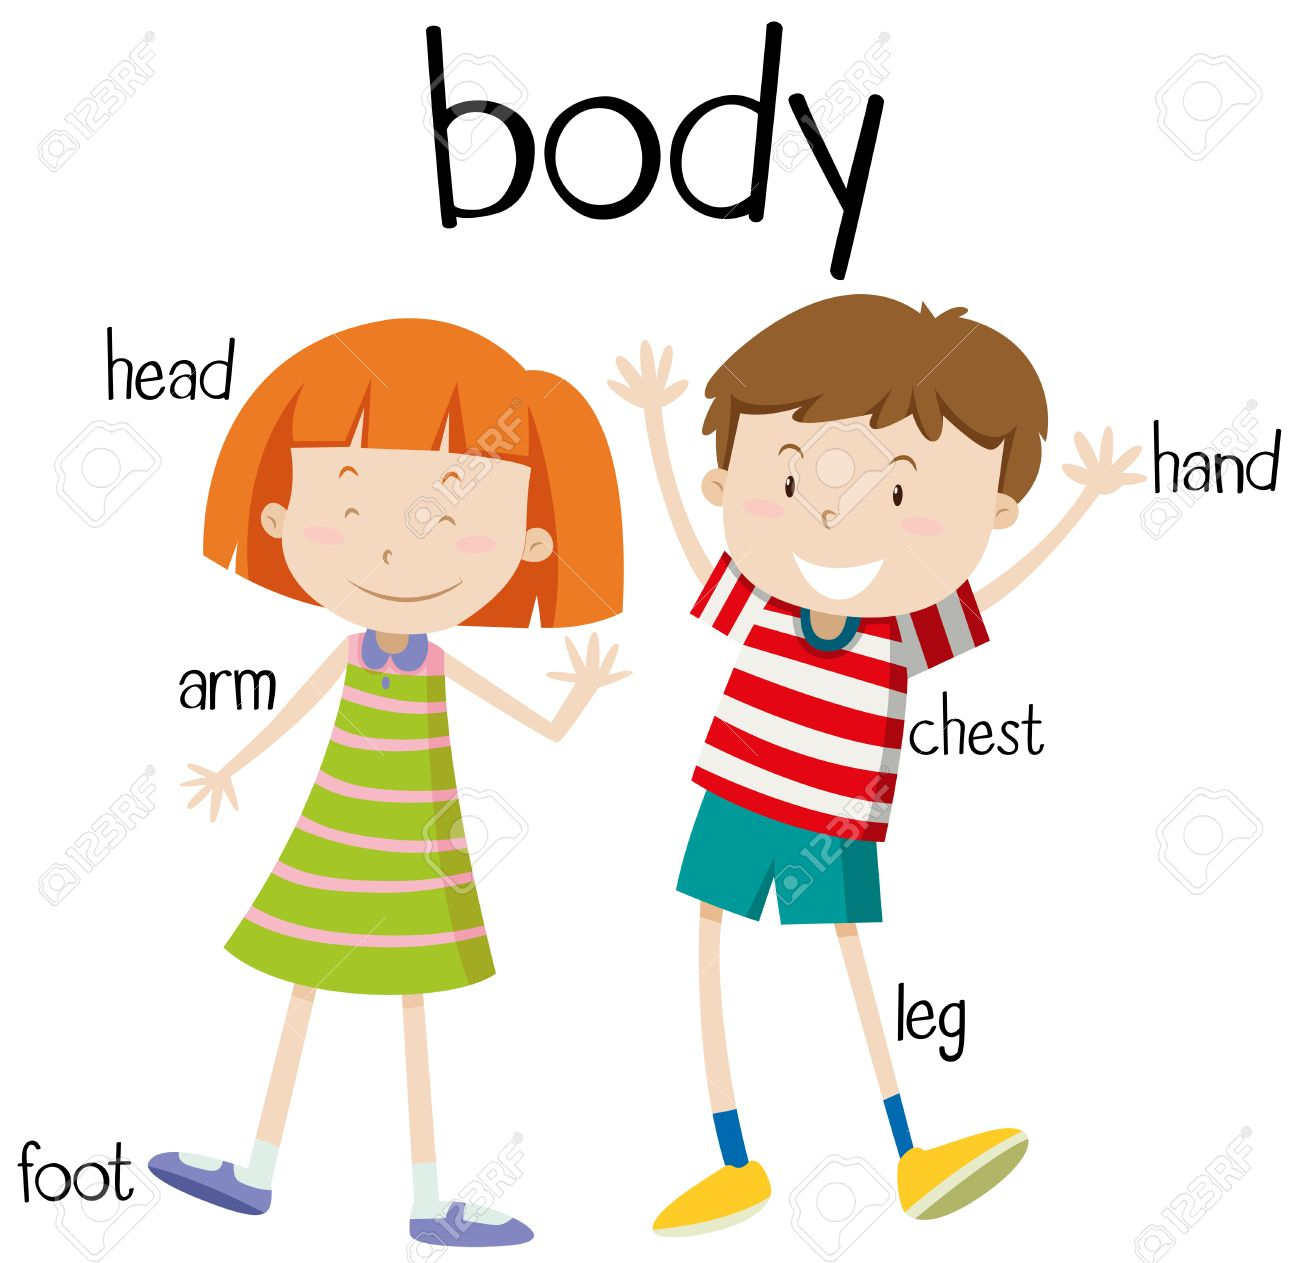 Clipart Of Human Body Part Human Body Parts Diagram.